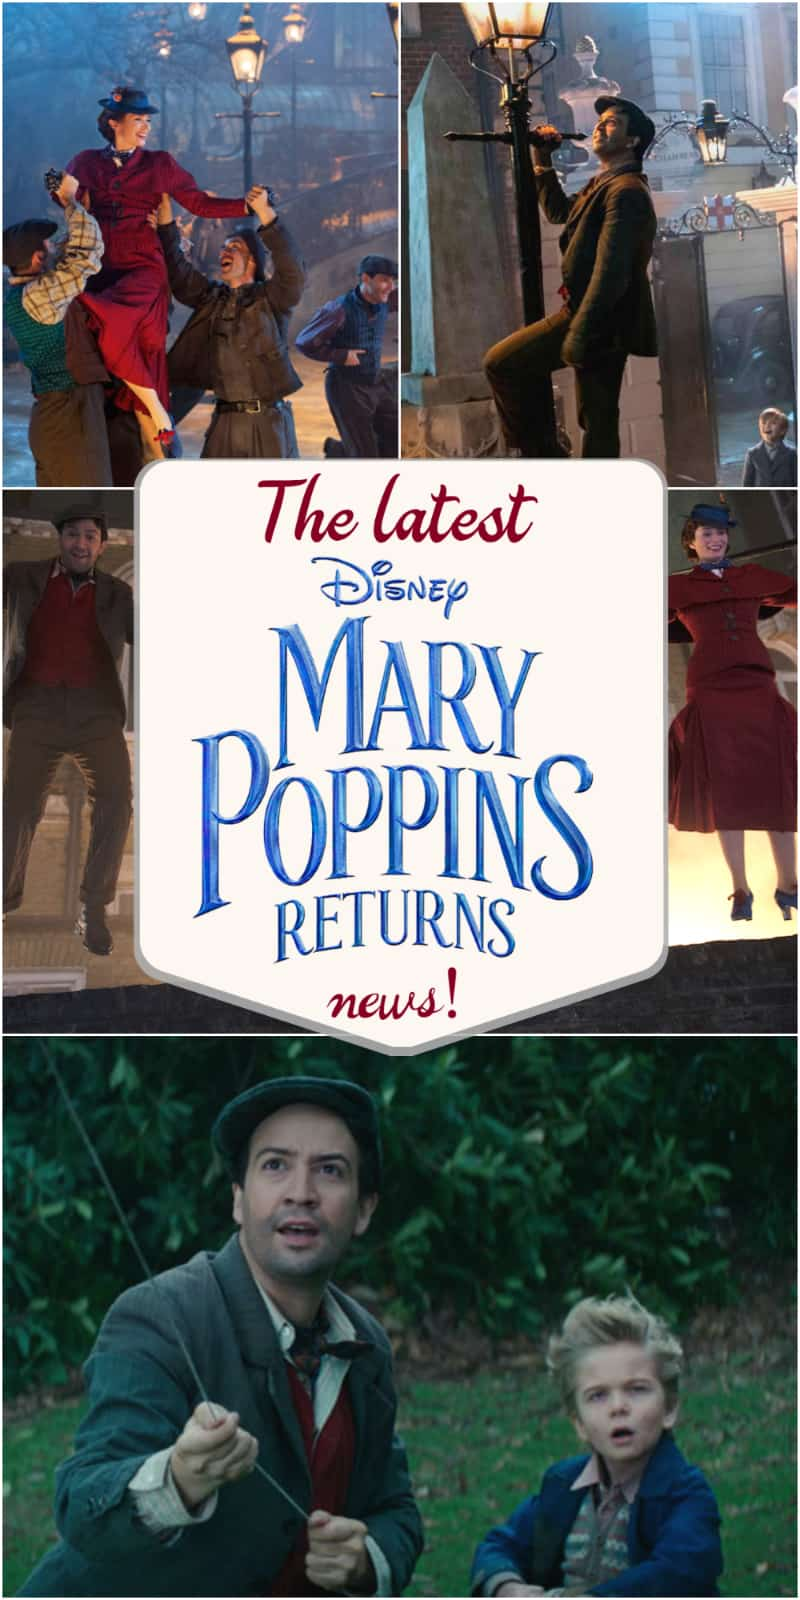 Mary Poppins Returns news and all new photos from the movie!